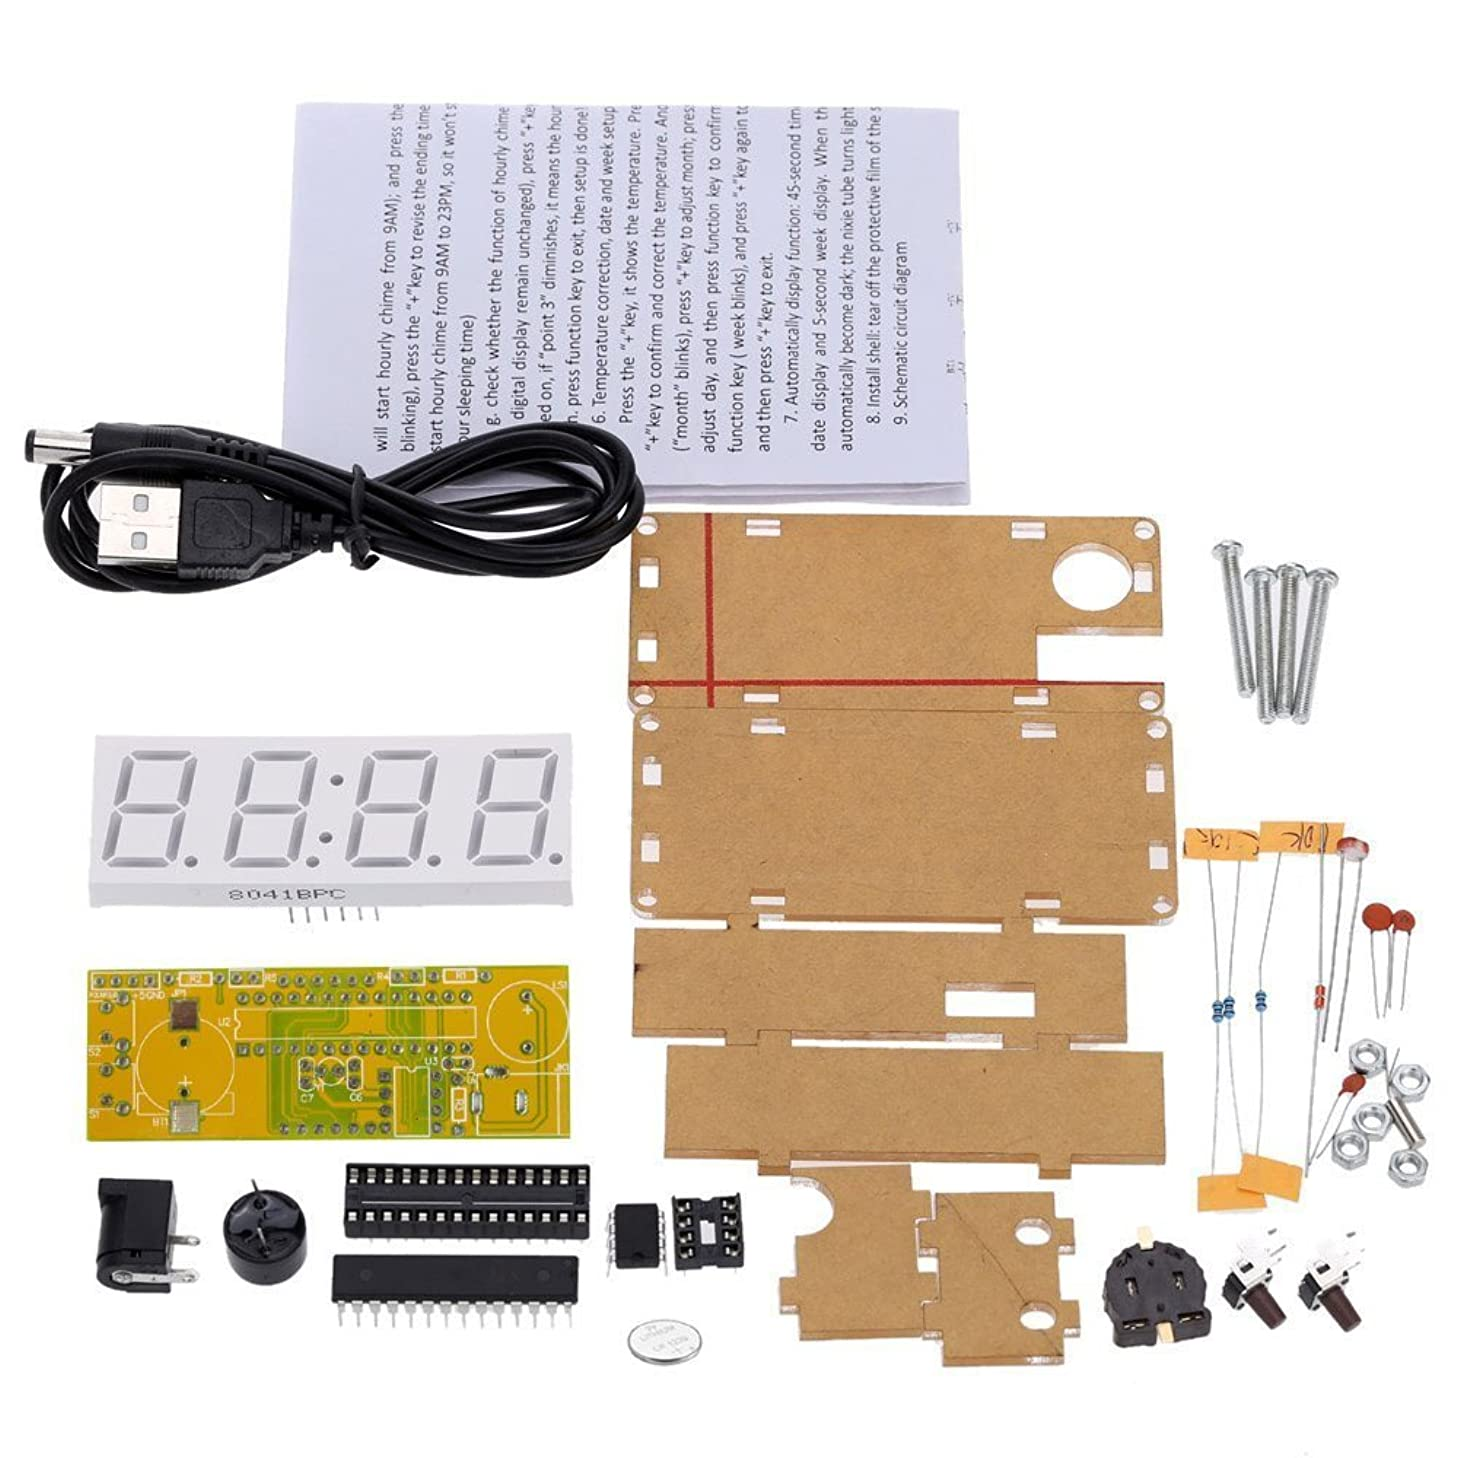 WINGONEER 4-Digit DIY LED Electronic Clock Kit Microcontroller 0.8inch Digital Tube Clock with Thermometer Hourly Chime Function DIY Kit Module - Green